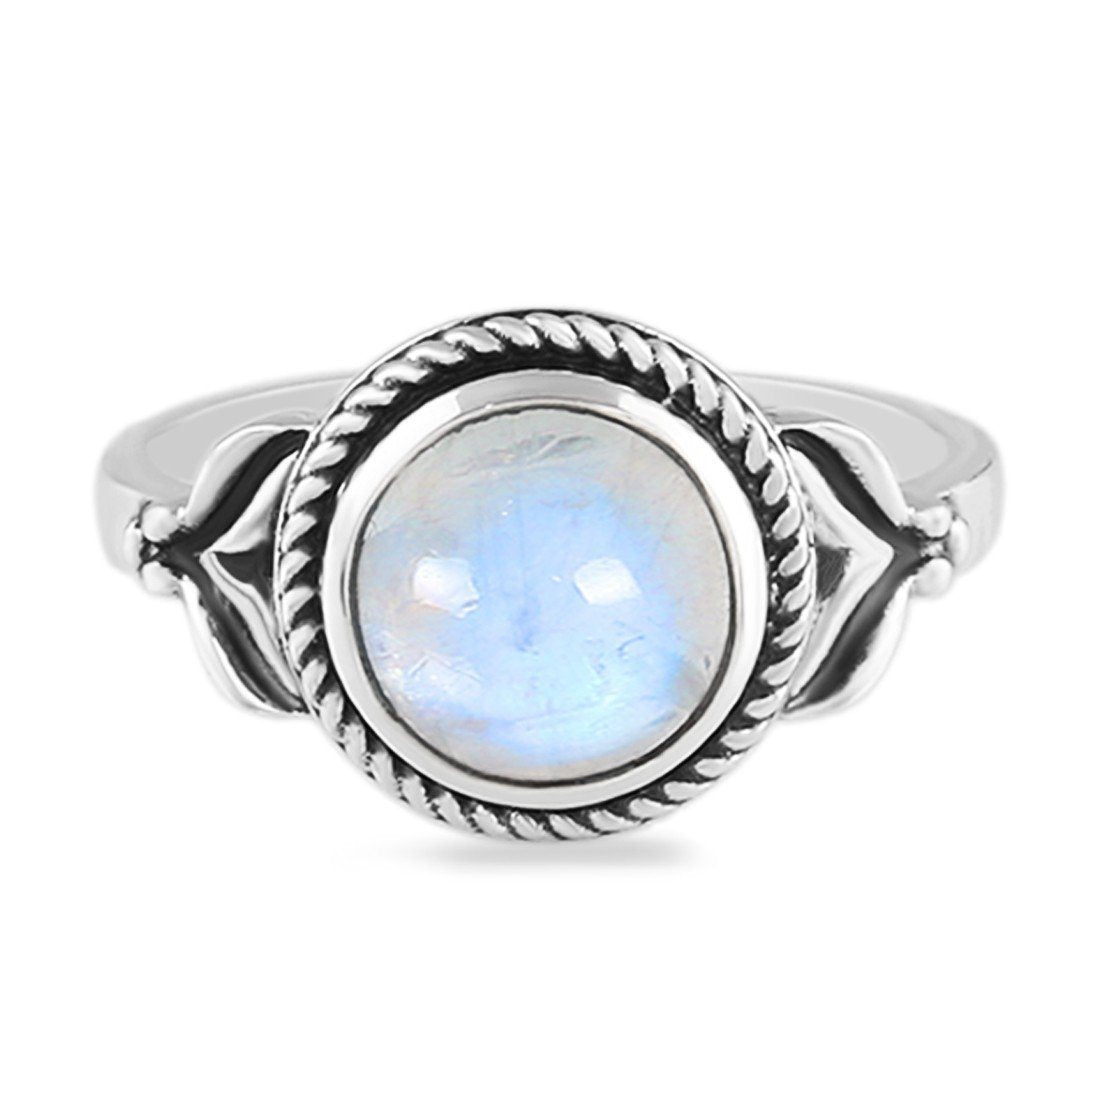 Moonstone Ring-Eye Candy Moonstone Ring 925 SILVER & MOONSTONE